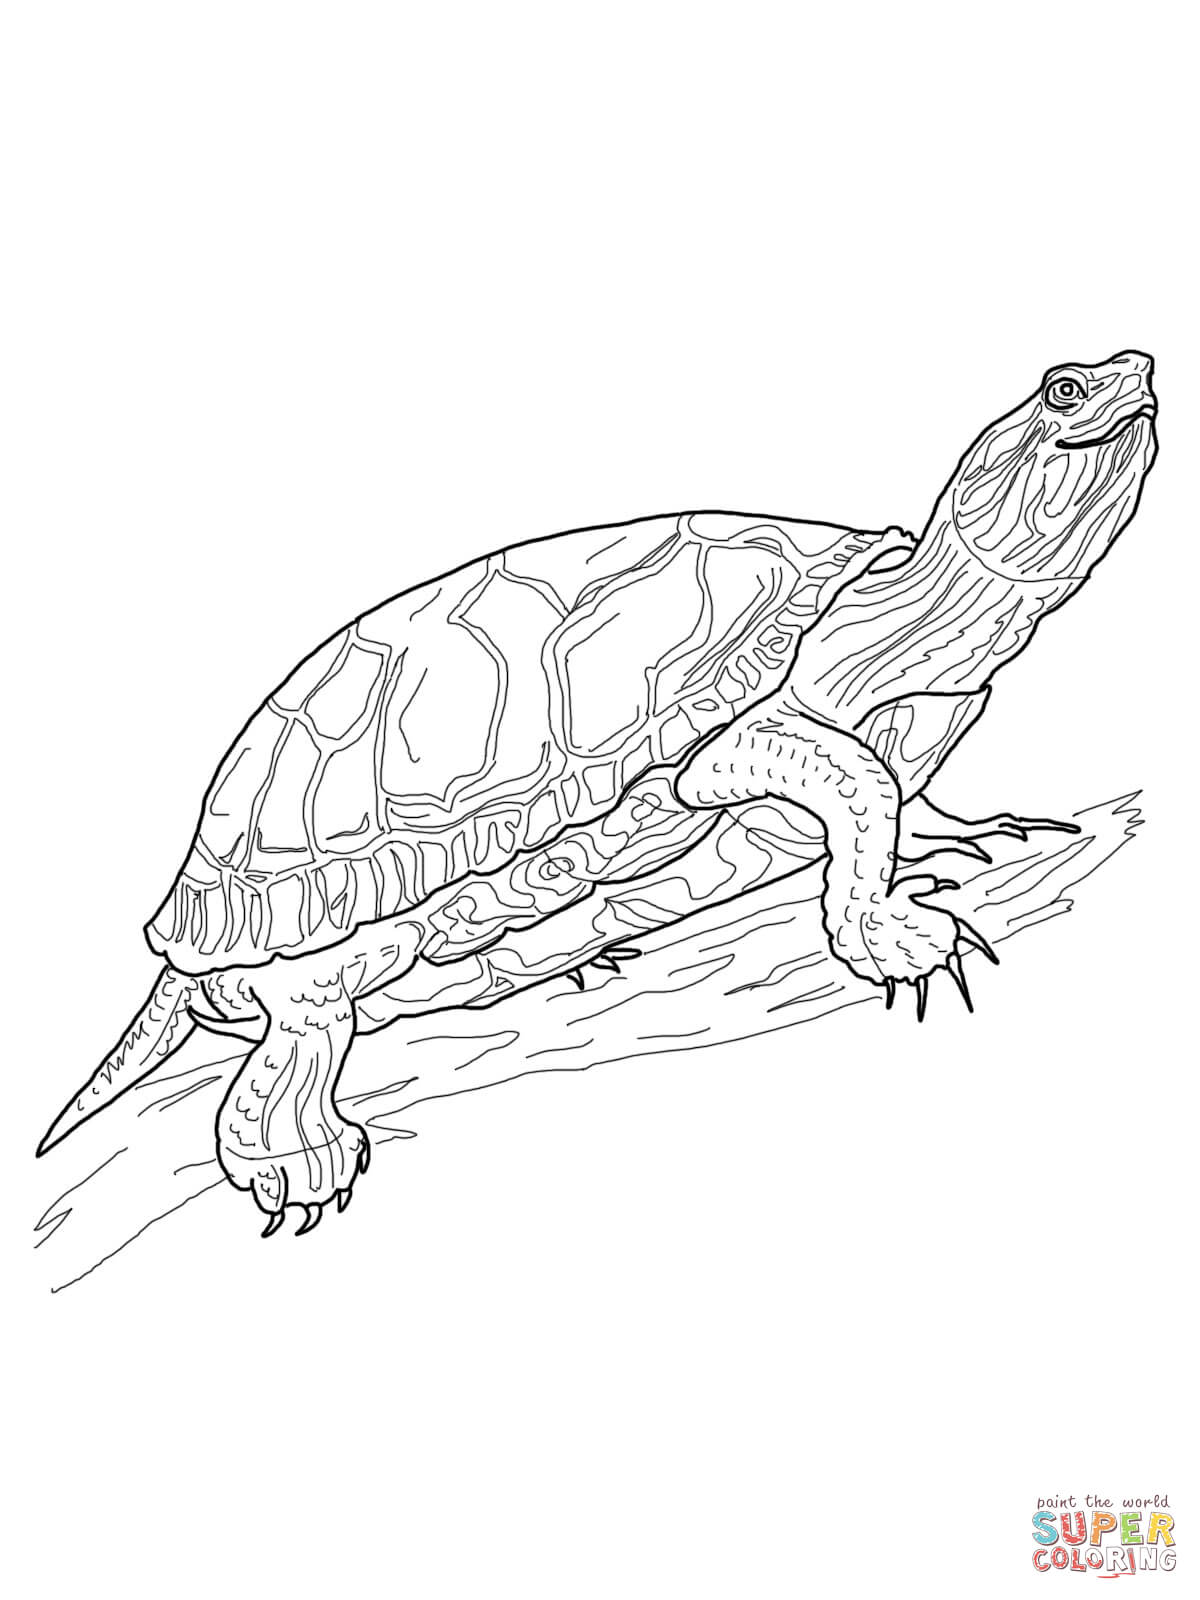 painted turtle coloring page two painted turtles coloring page free printable painted coloring turtle page